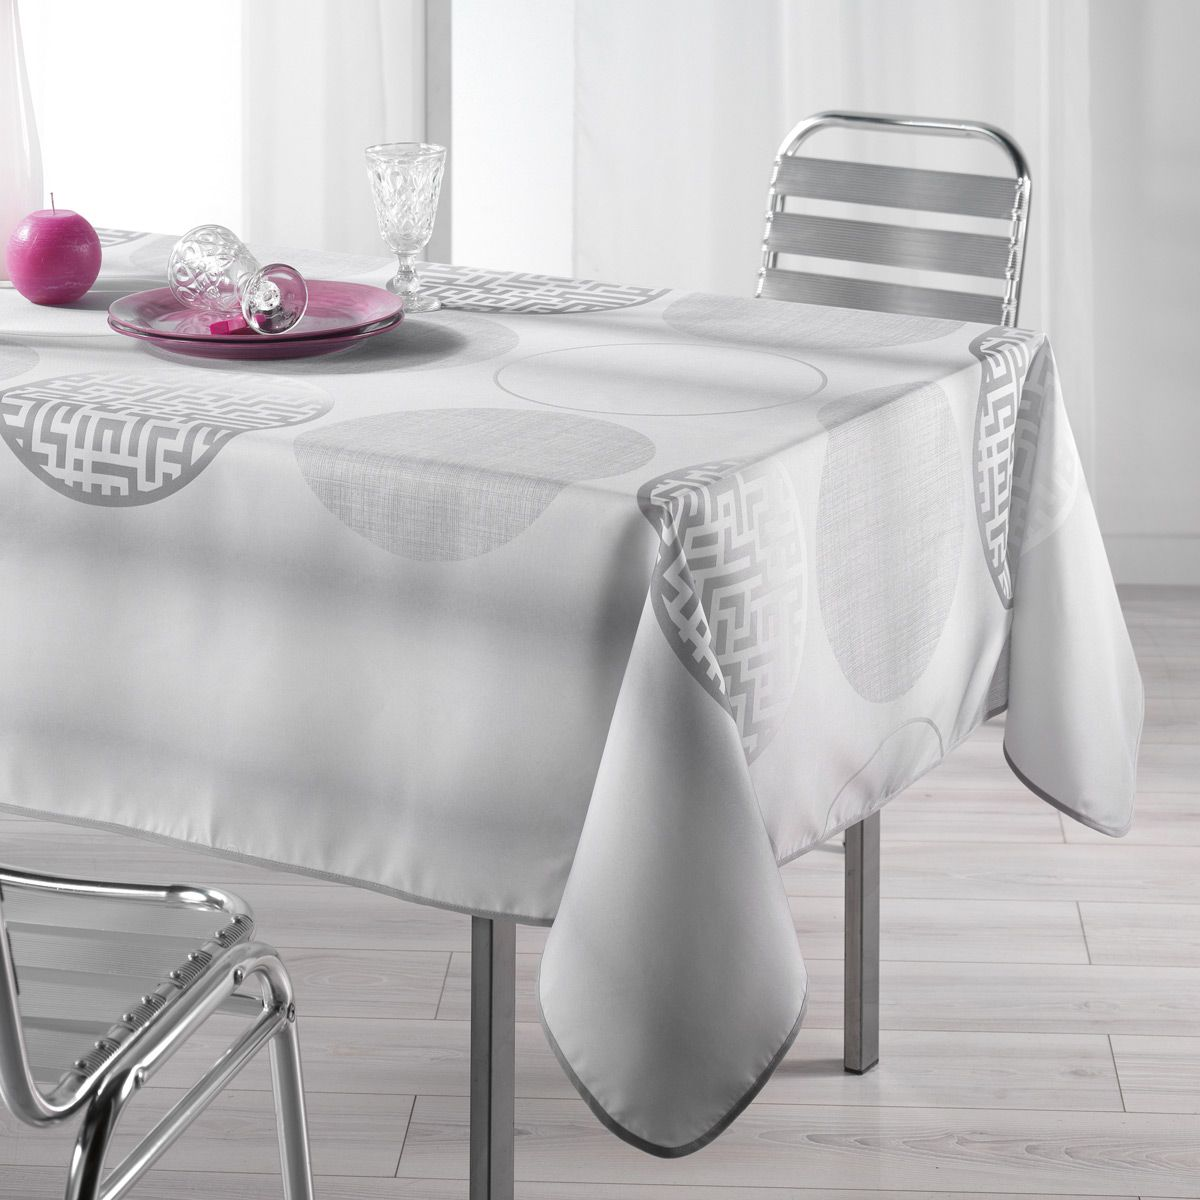 Nappe Grise Nappe Rectangulaire Grise